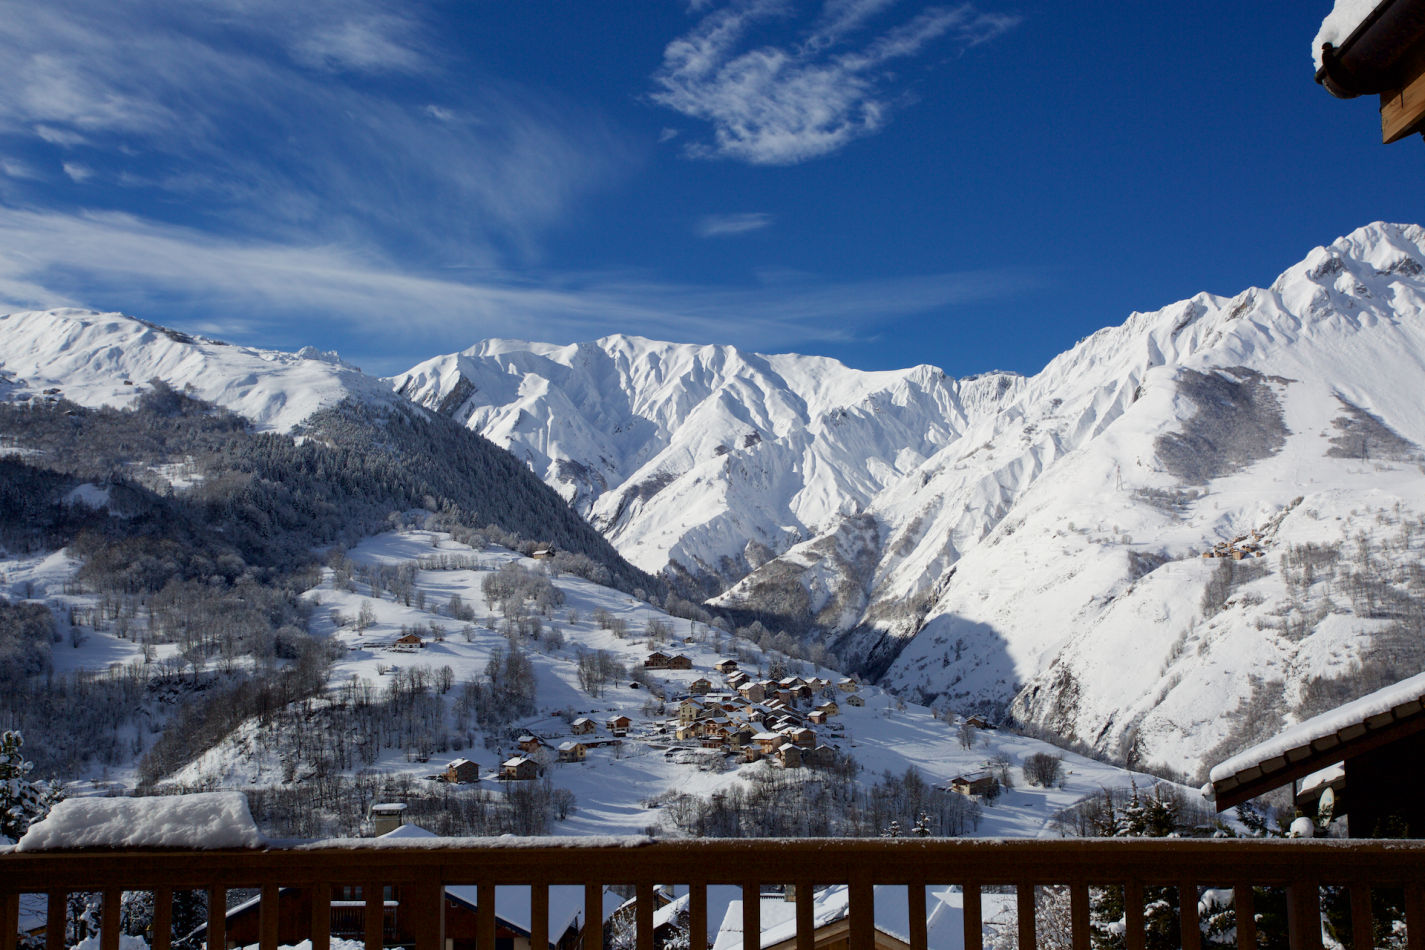 chalet-view-image-23